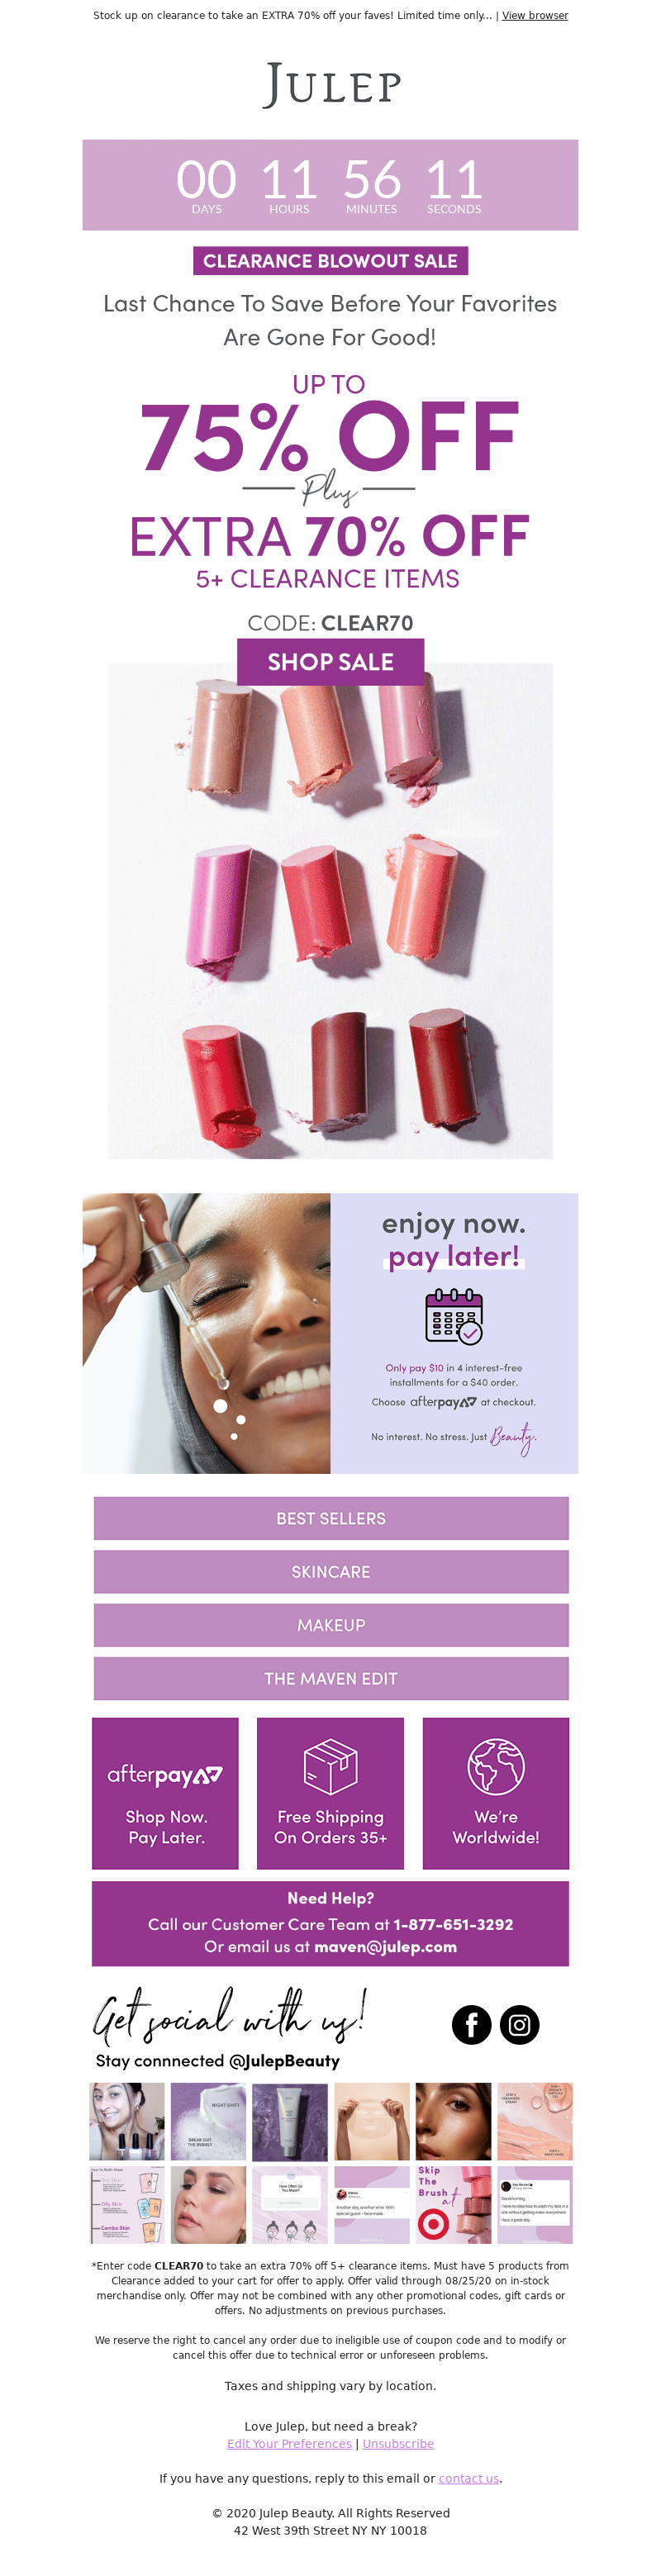 Julep discount and promotional email for clearance products